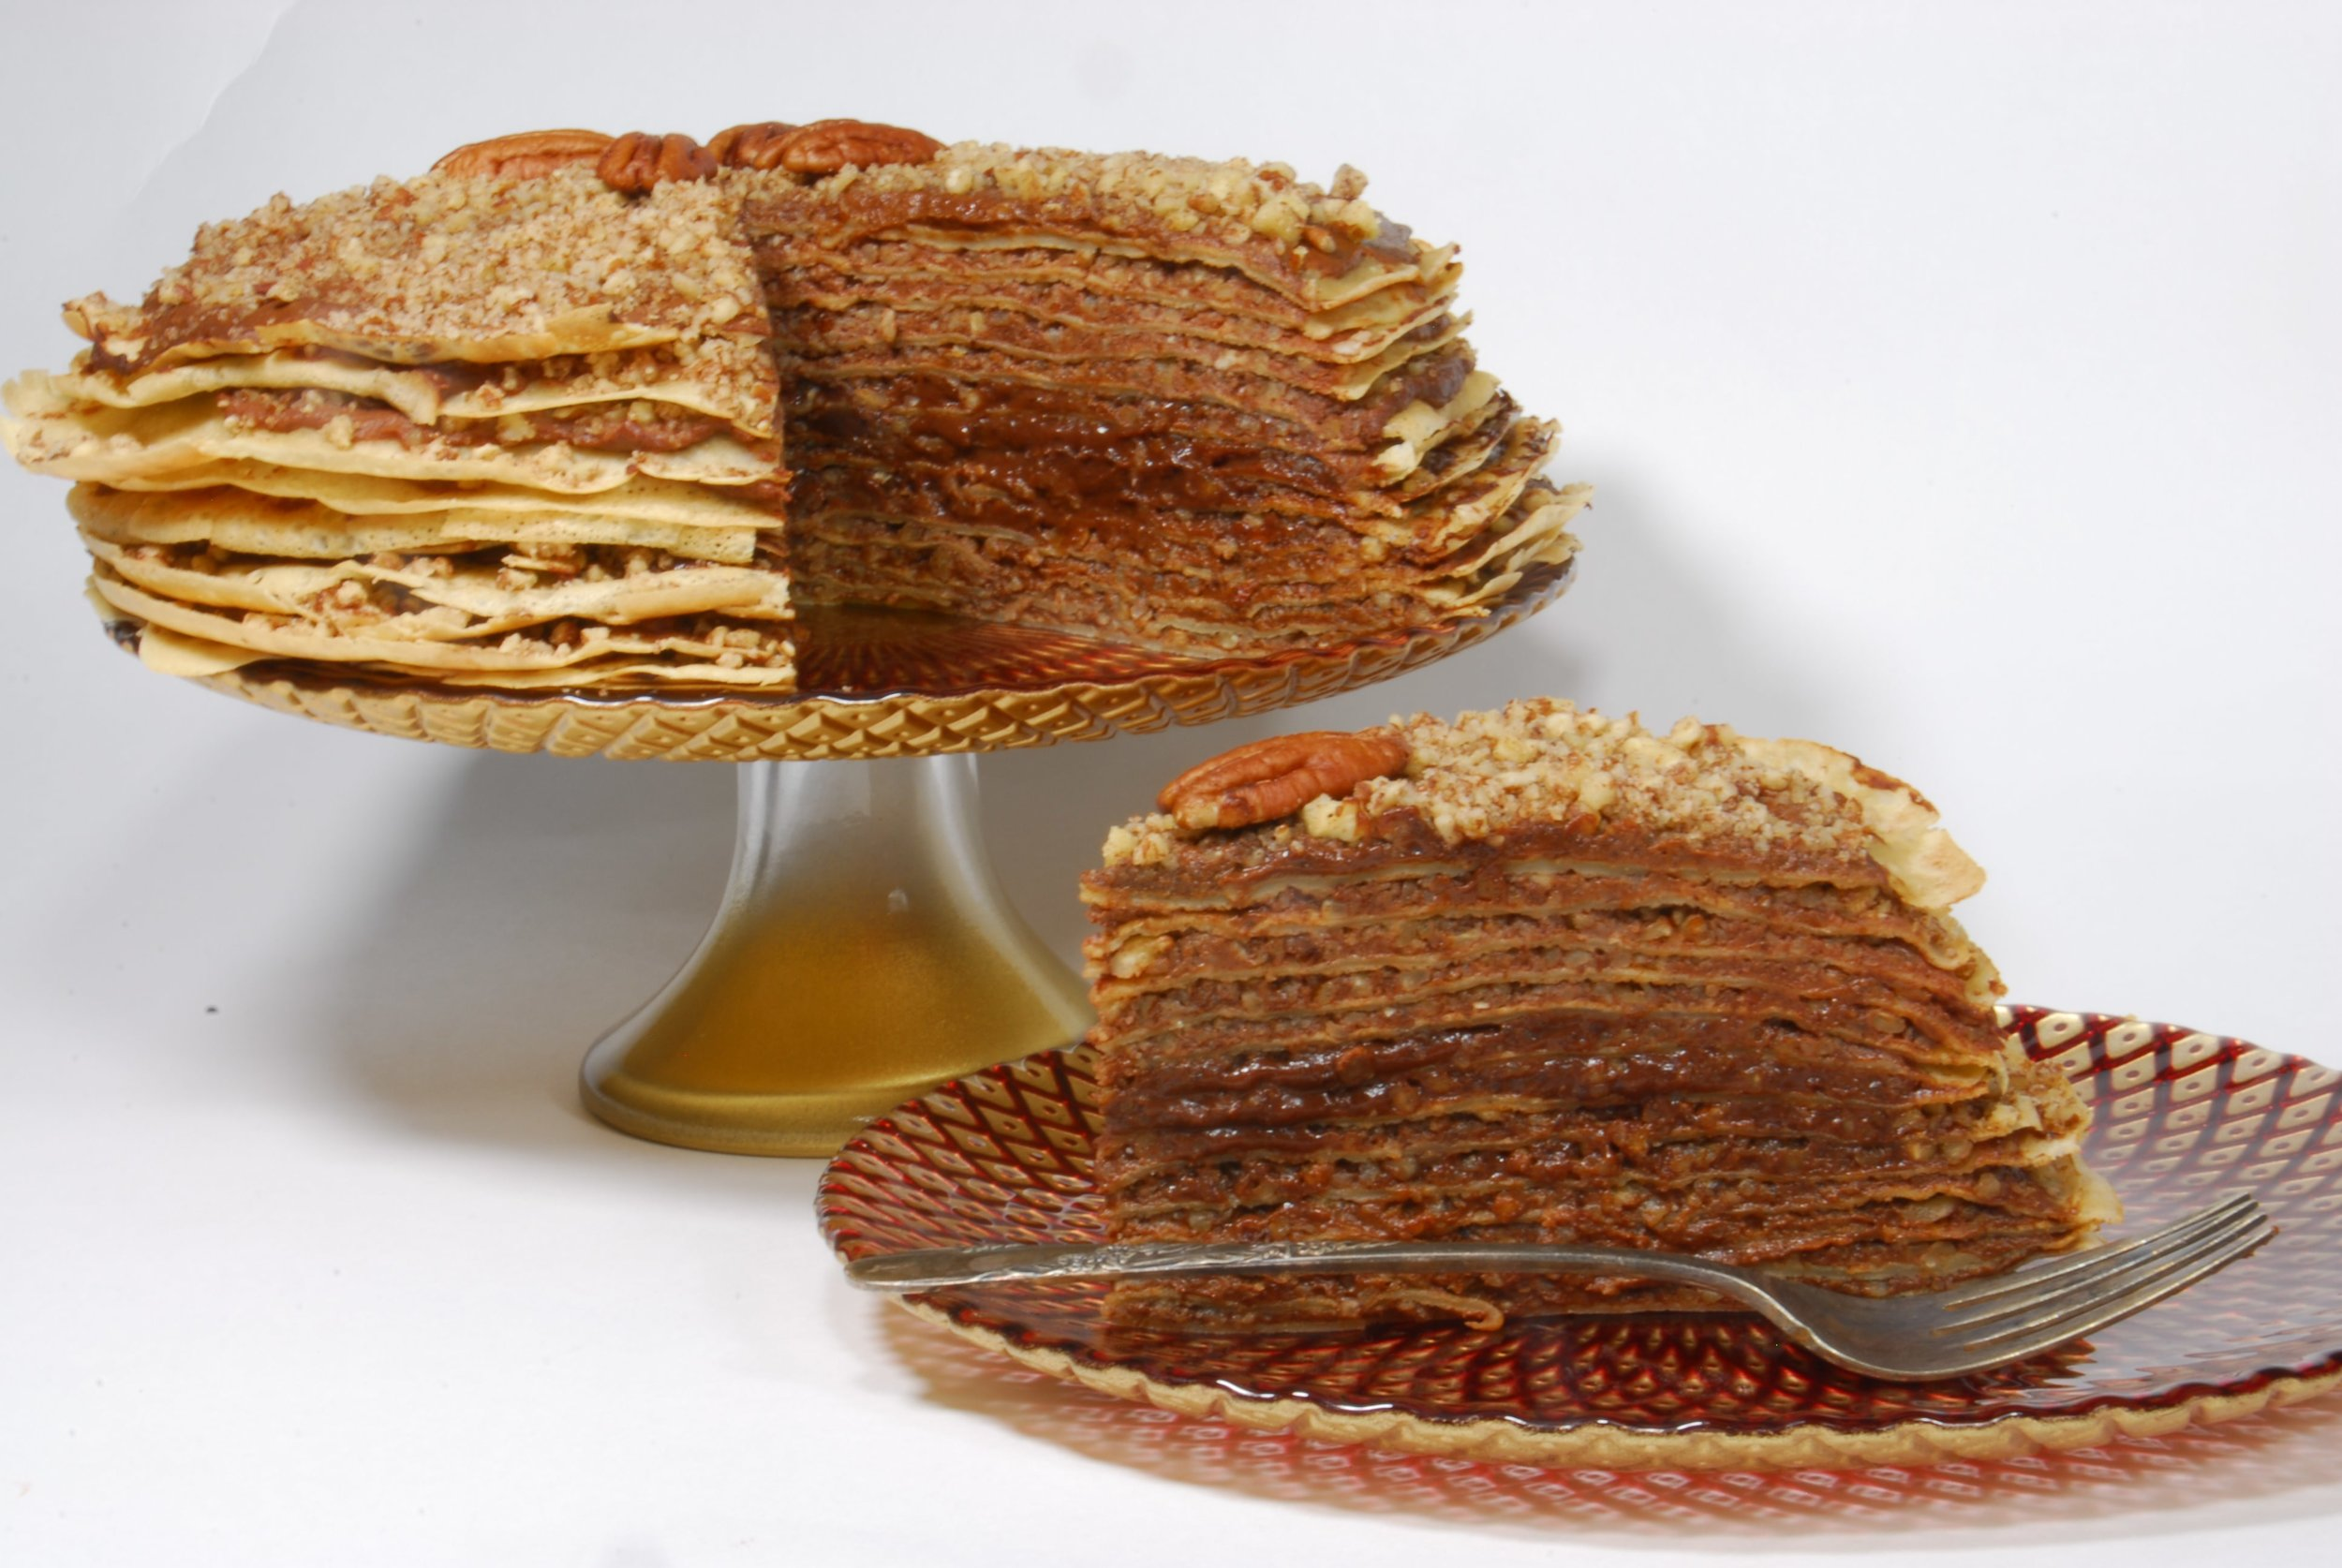 Gluten free crepe torte with Forte chocolate spread